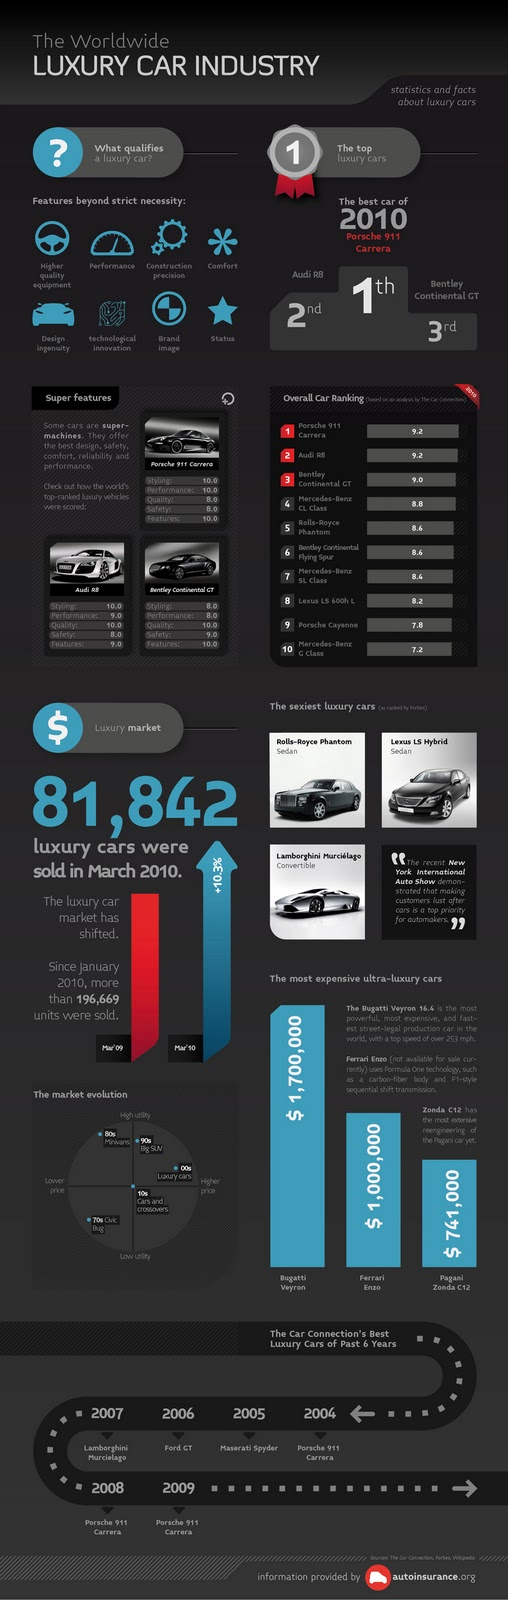 Luxury car industry